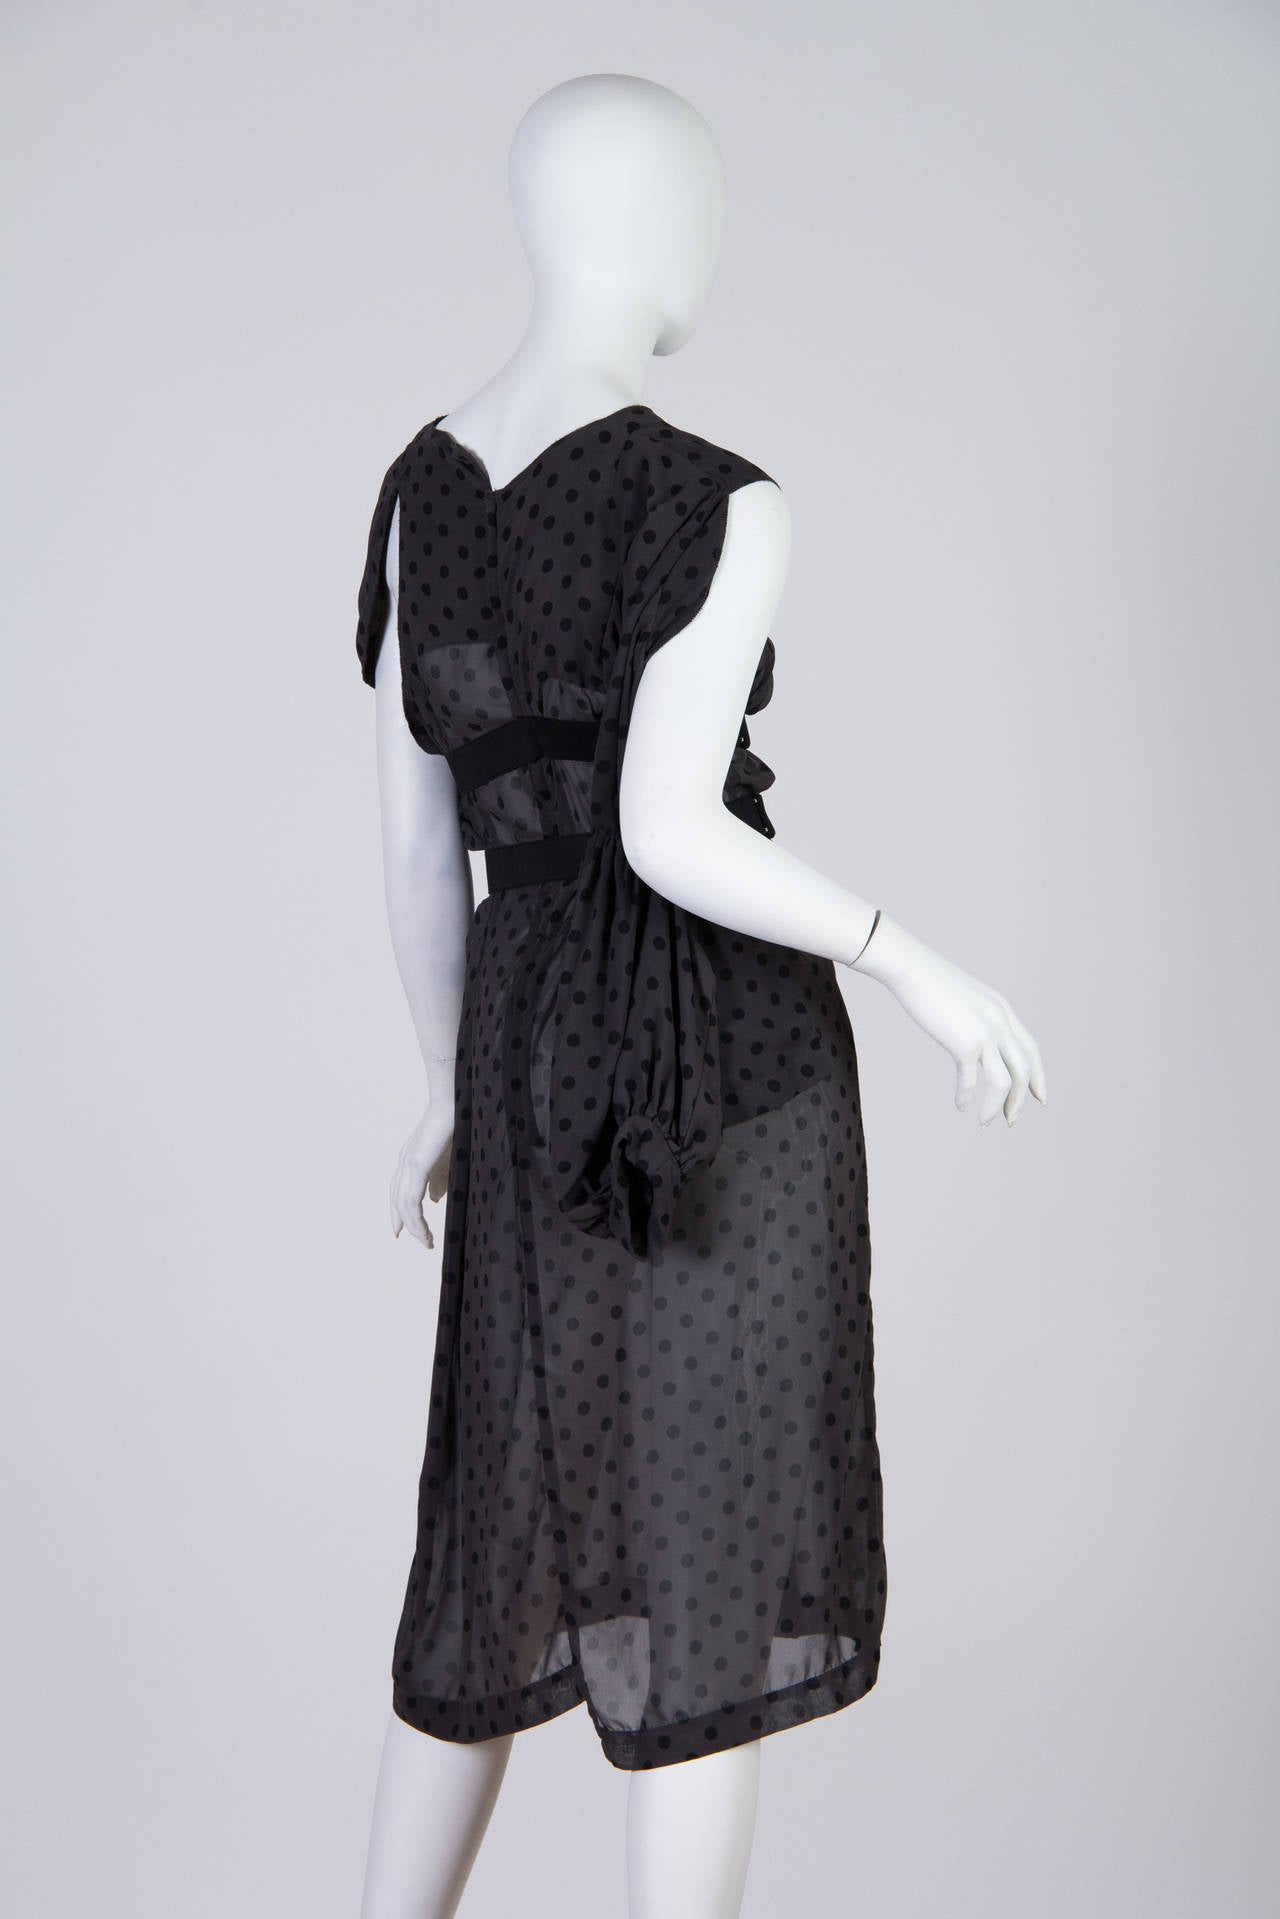 Comme des Garcons Deconstructed Chiffon Dress In Excellent Condition For Sale In New York, NY